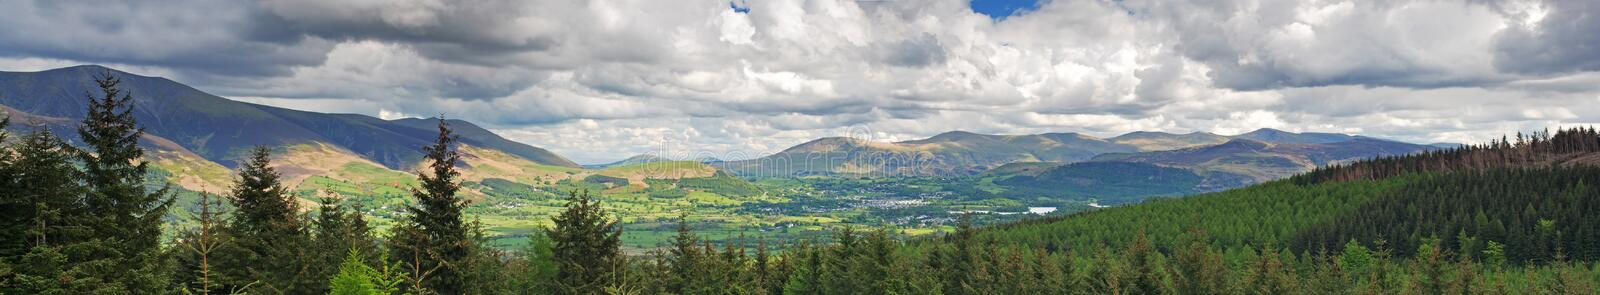 Download Landscape Panorama Stock Images - Image: 3042204